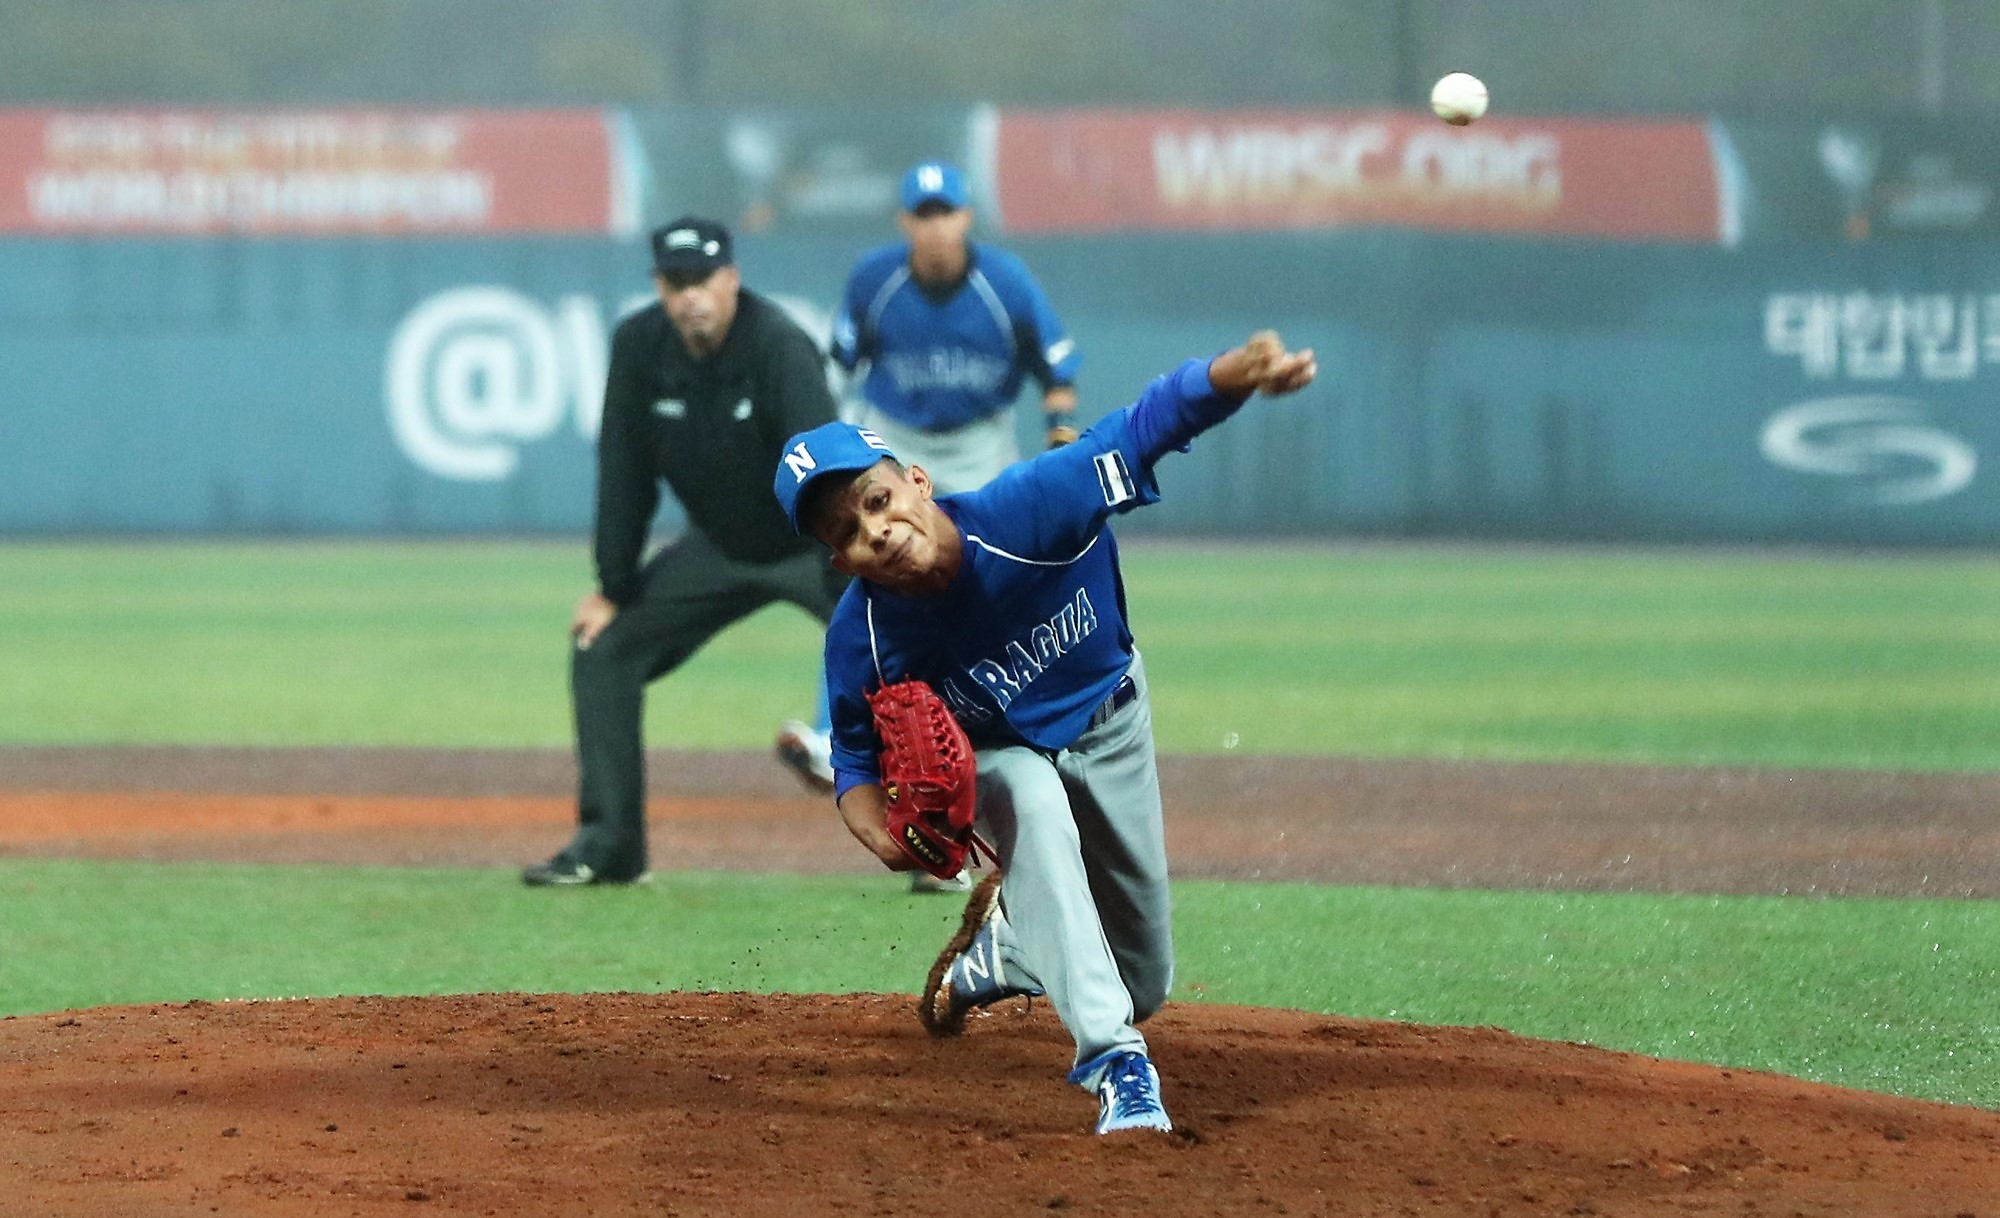 Yovani Canales kept Korea scoreless for two innings, then was plagued by defensive errors